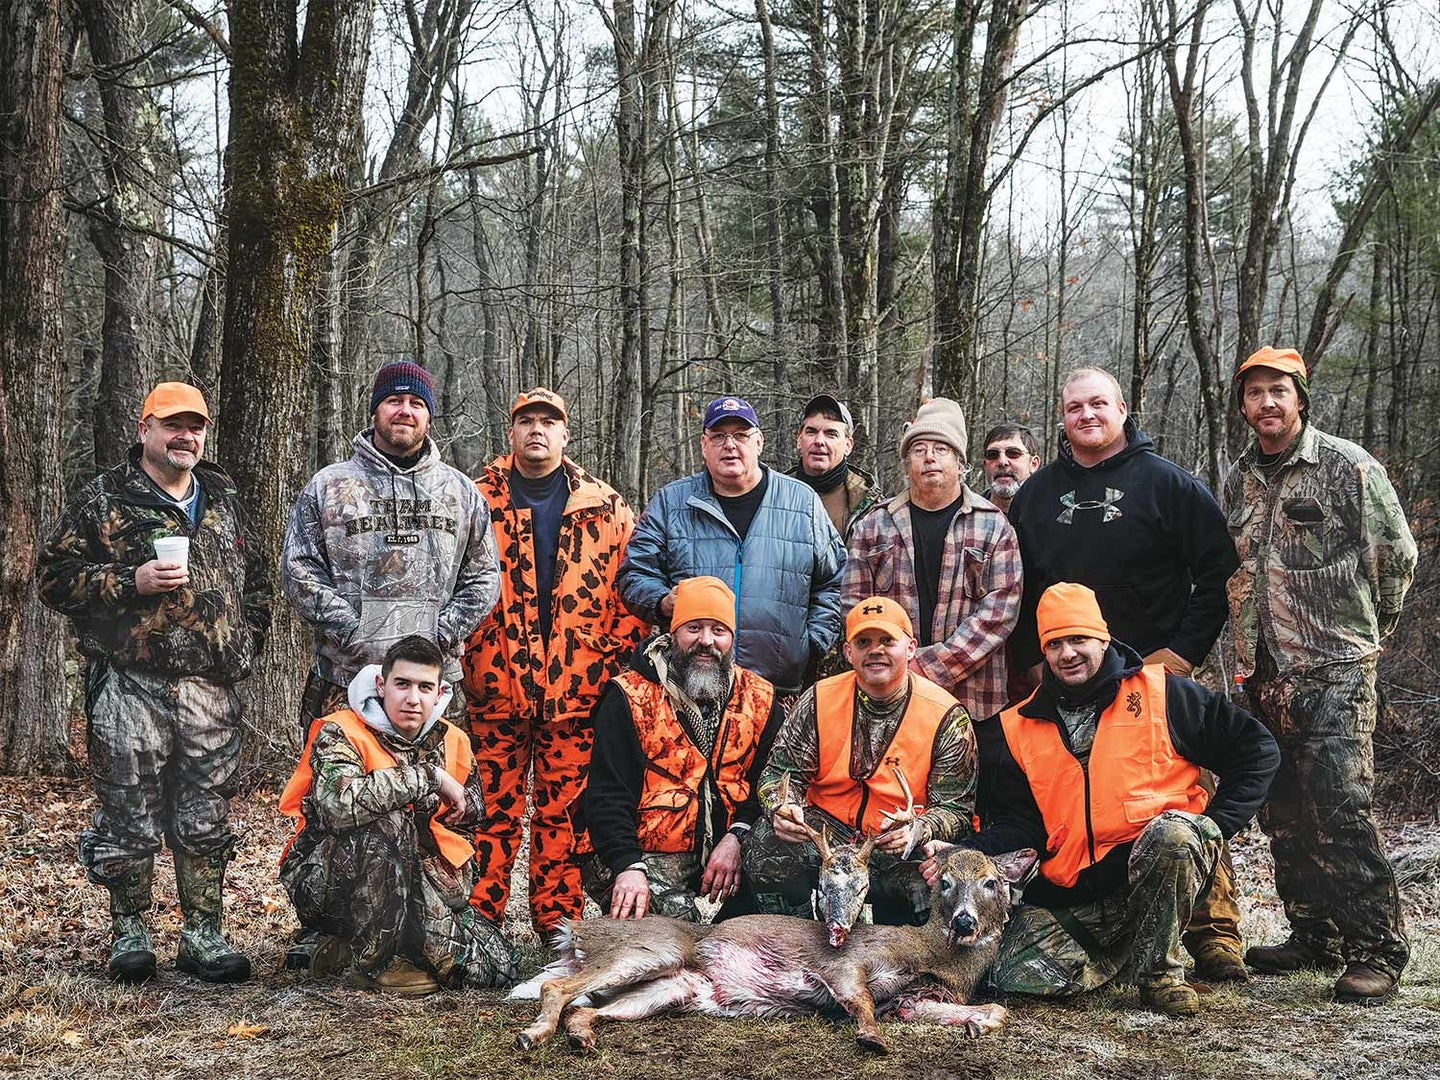 group of male hunters standing over a deer